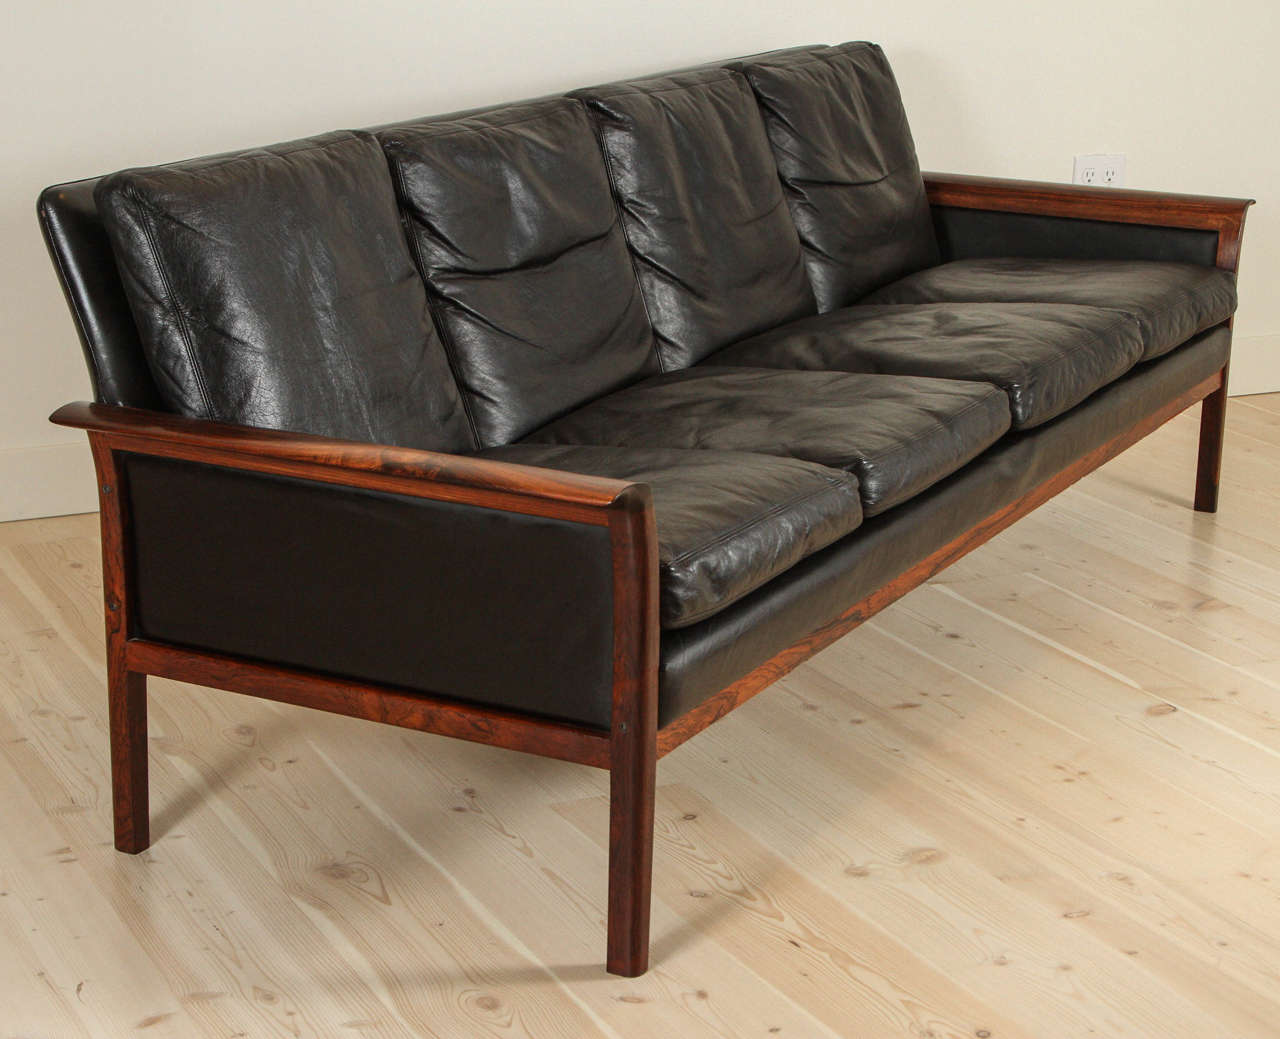 Leather and rosewood sofa by Hans Olsen.